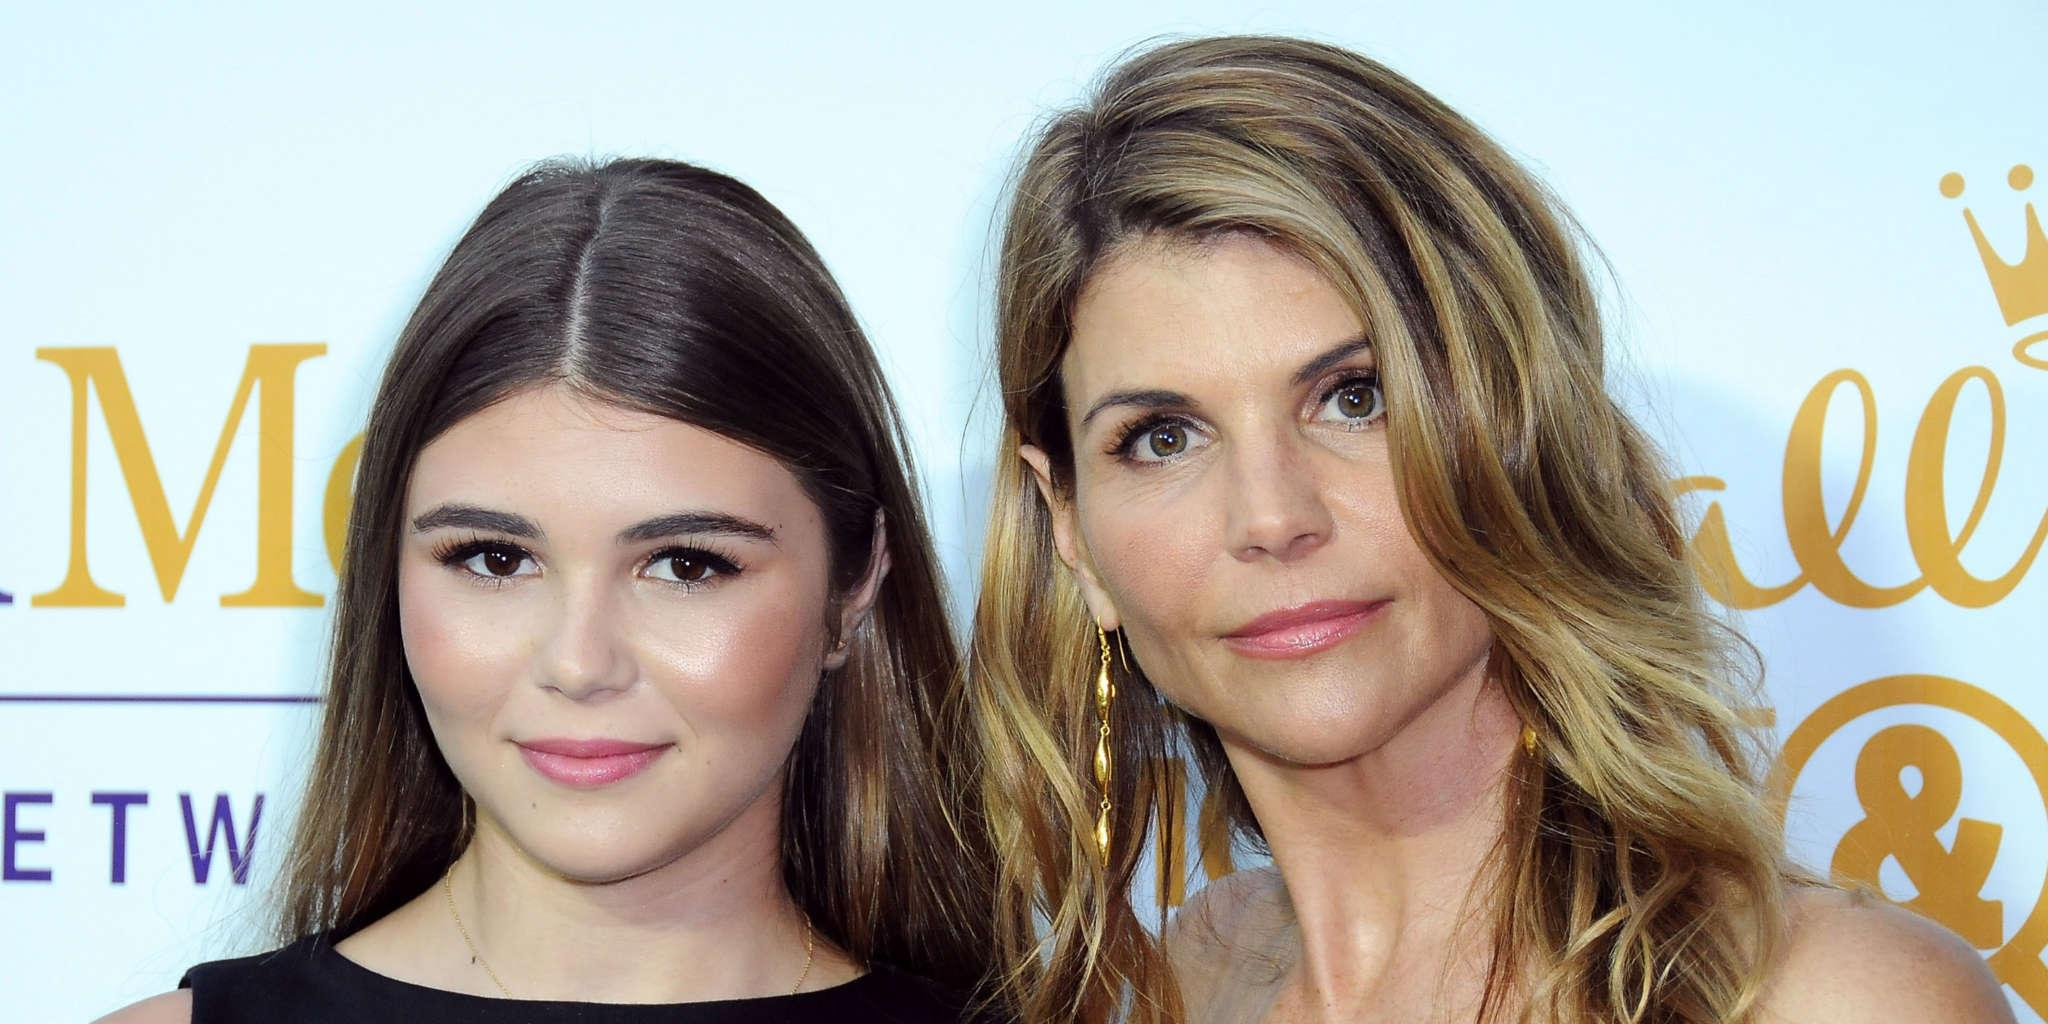 Lori Loughlin Is Supportive Of Olivia Jade Returning To YouTube - She's So 'Proud!'